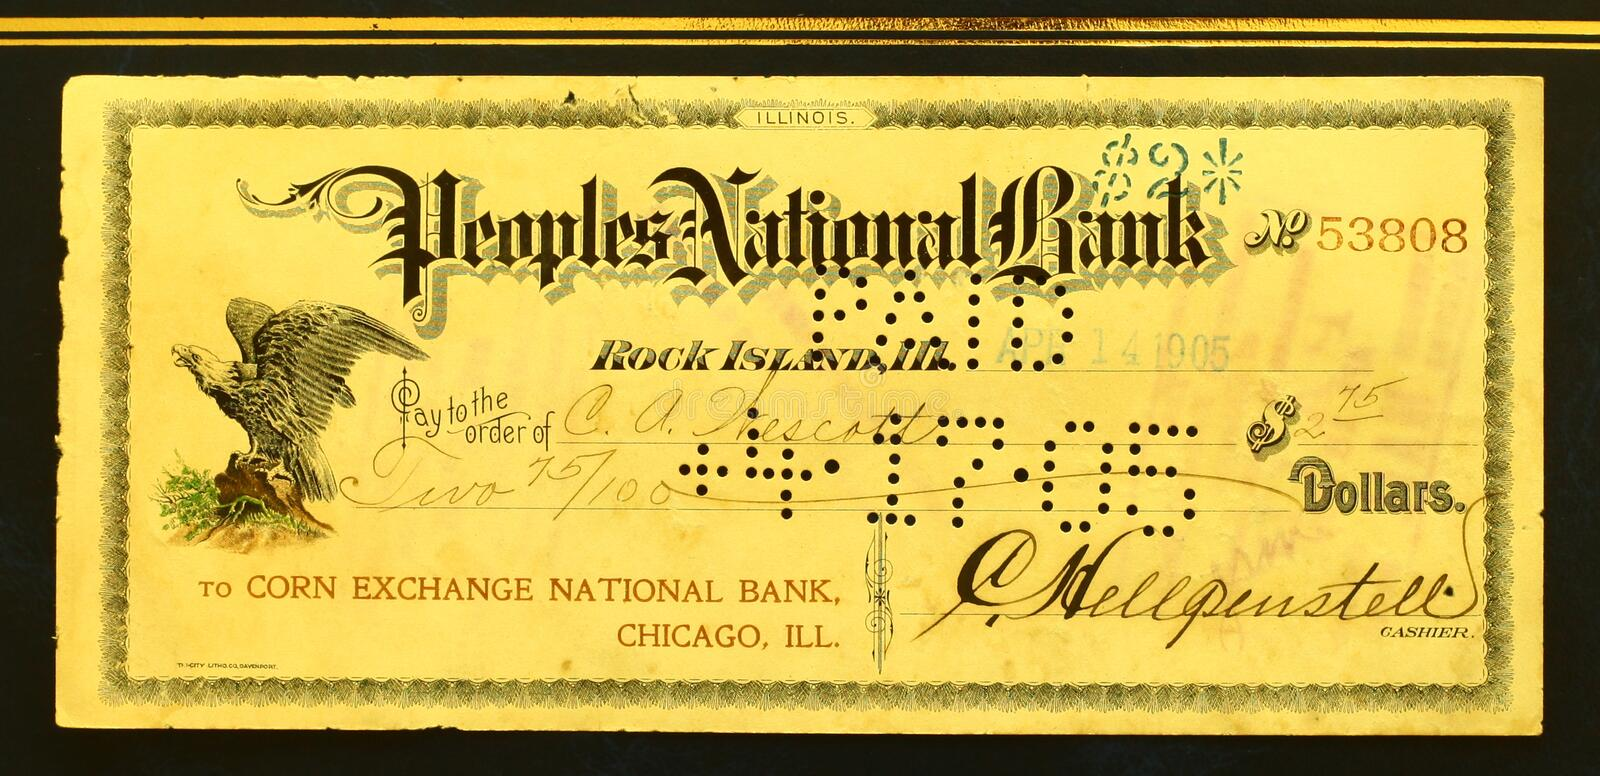 Bank cheque stock image